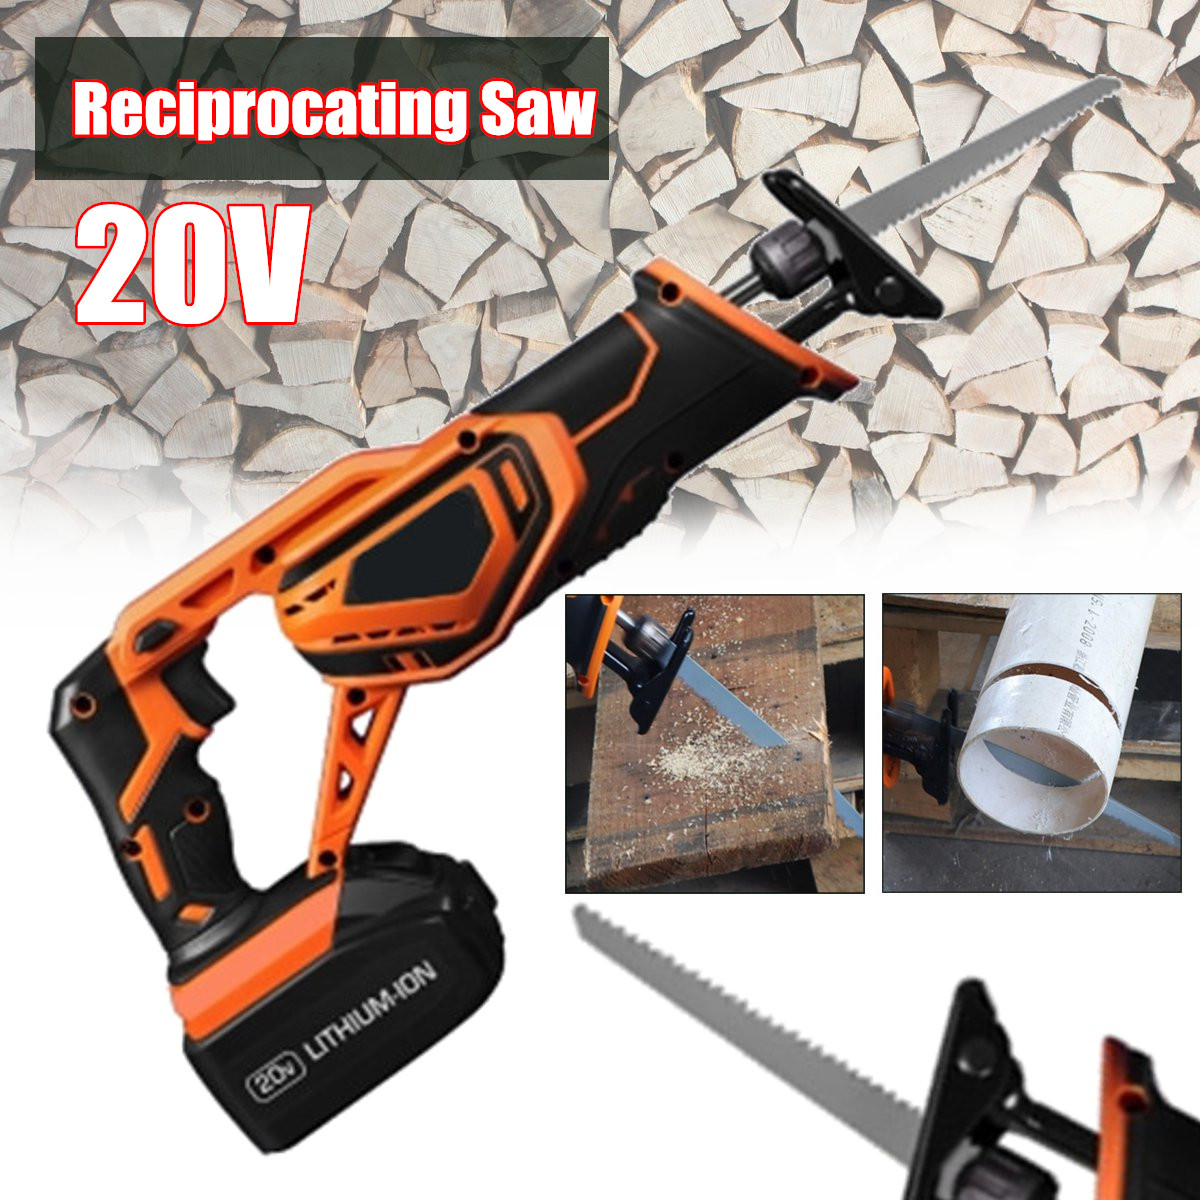 Drillpro Portable Rechargeable Reciprocating Saw Wood Cutting Saw 20V 3000mAh Electric Wood Metal Plastic Saw saw palmetto extract 45